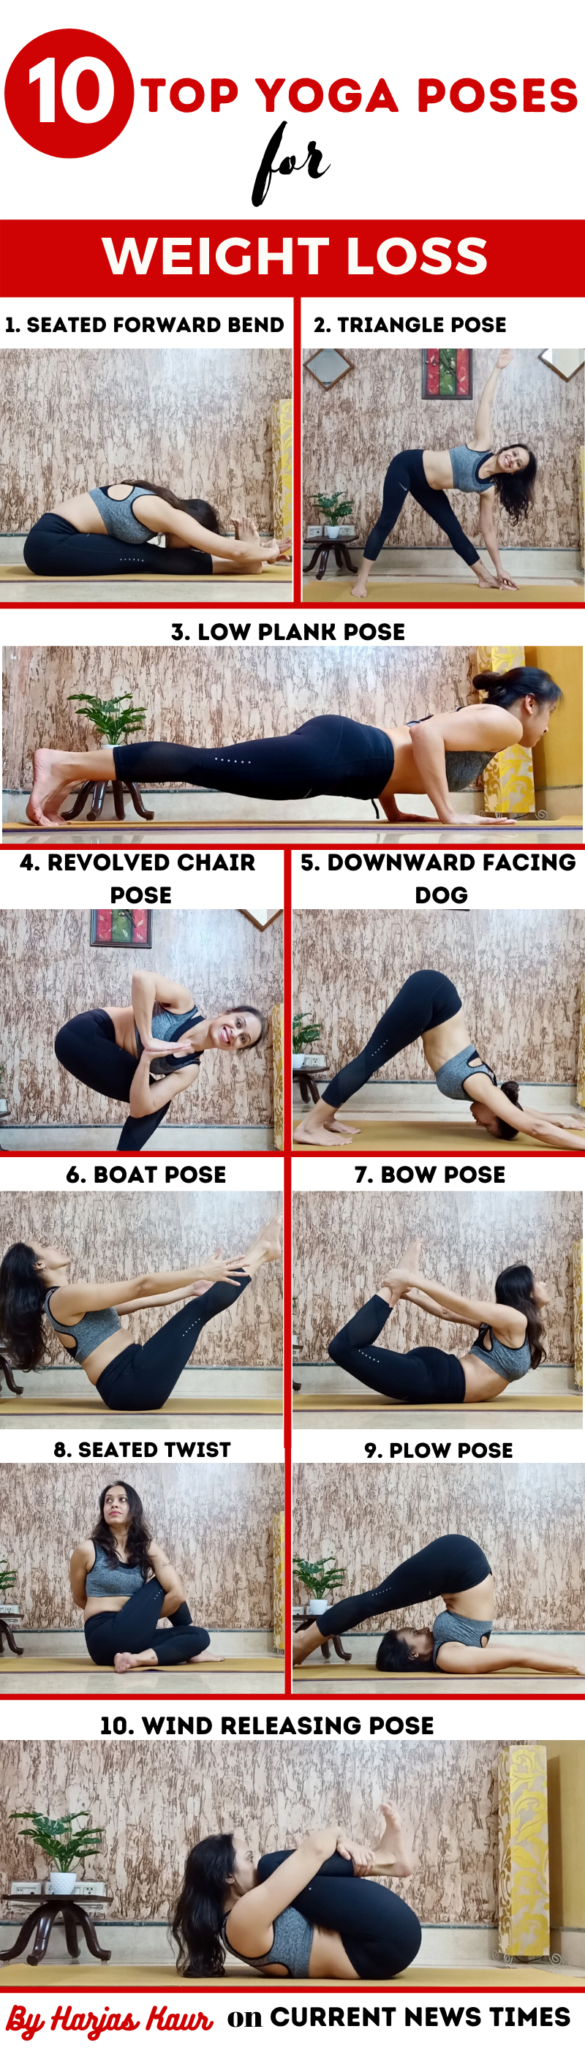 10-Top-Yoga-Poses-for-Weight-Loss